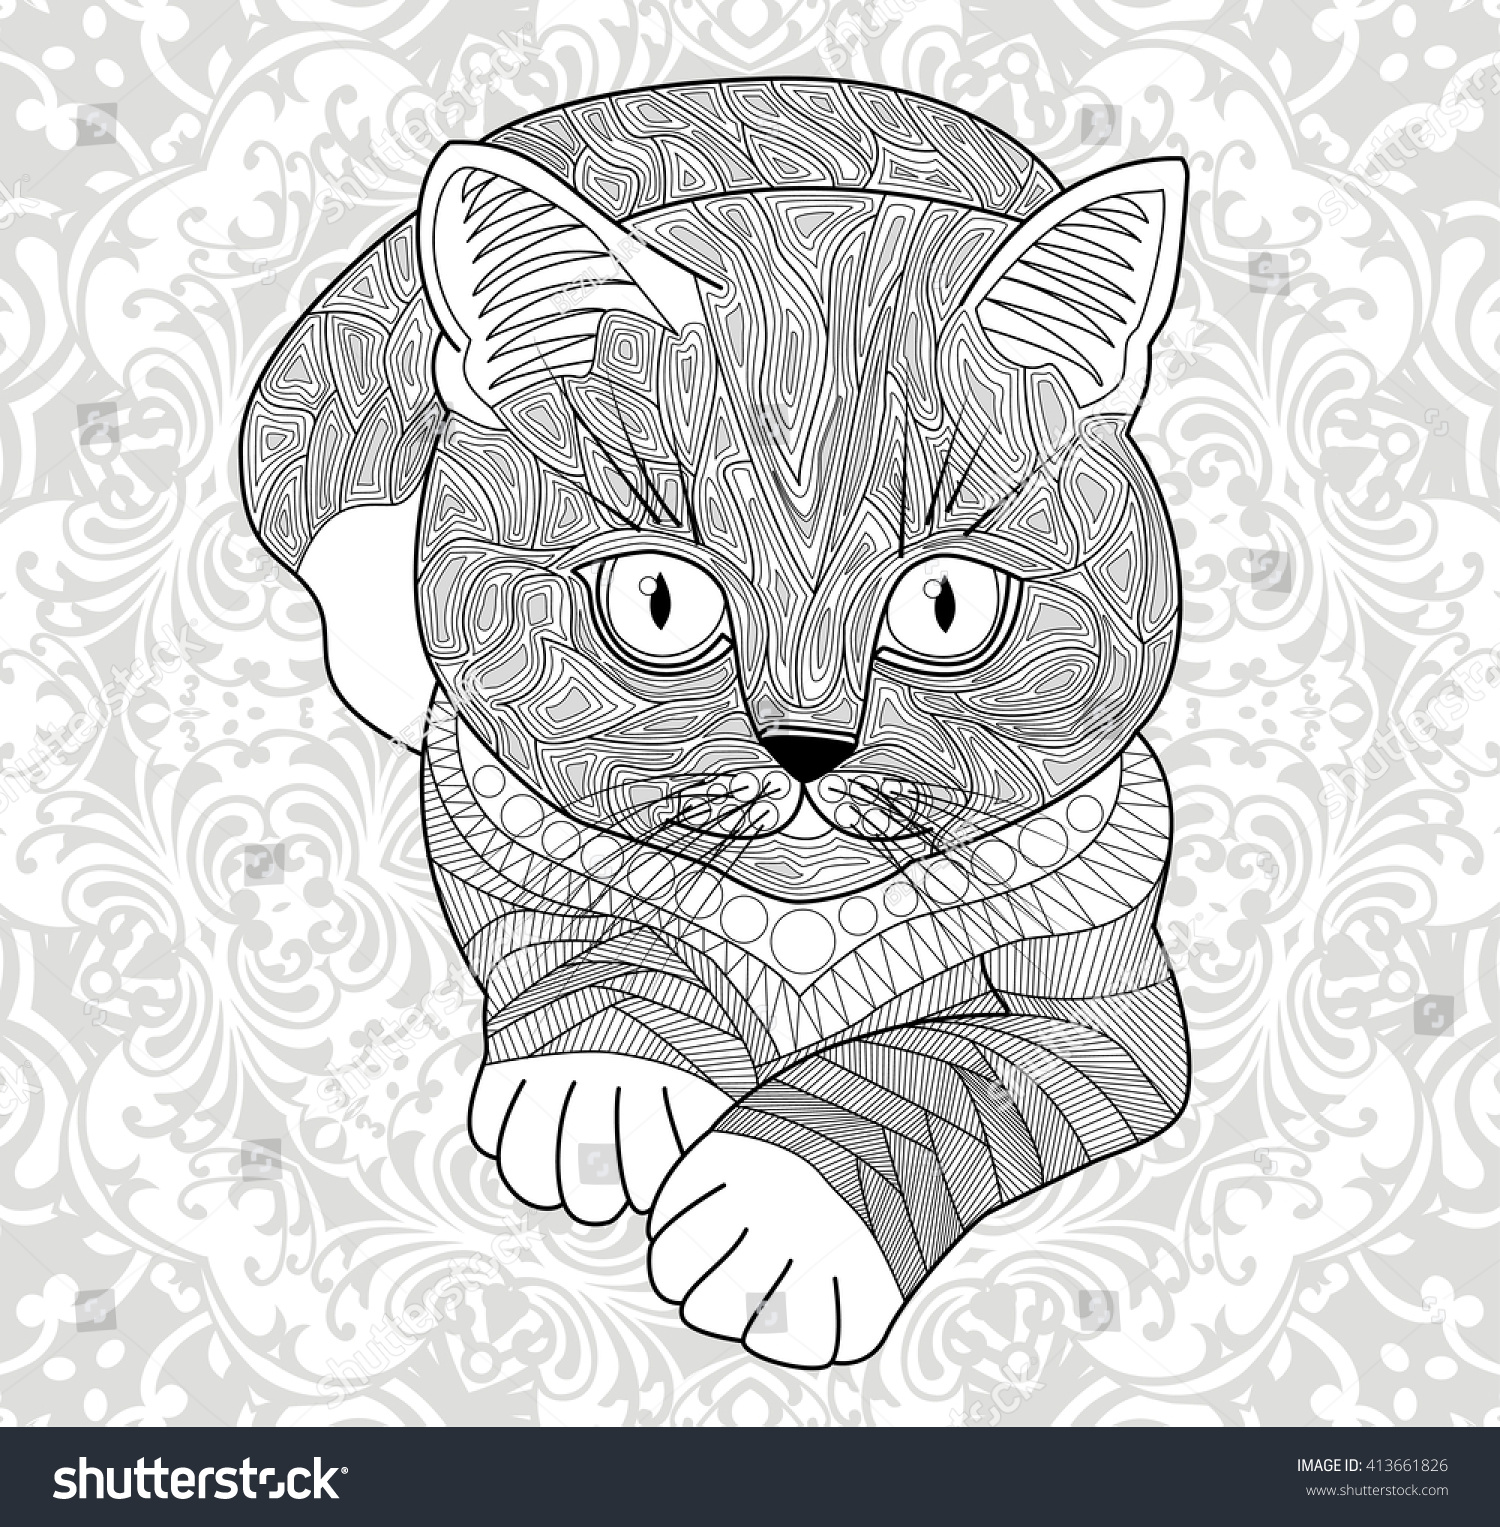 Coloring Pages For AdultsHand Drawn Cat With Ethnic Floral Doodle Pattern Abstract Flower